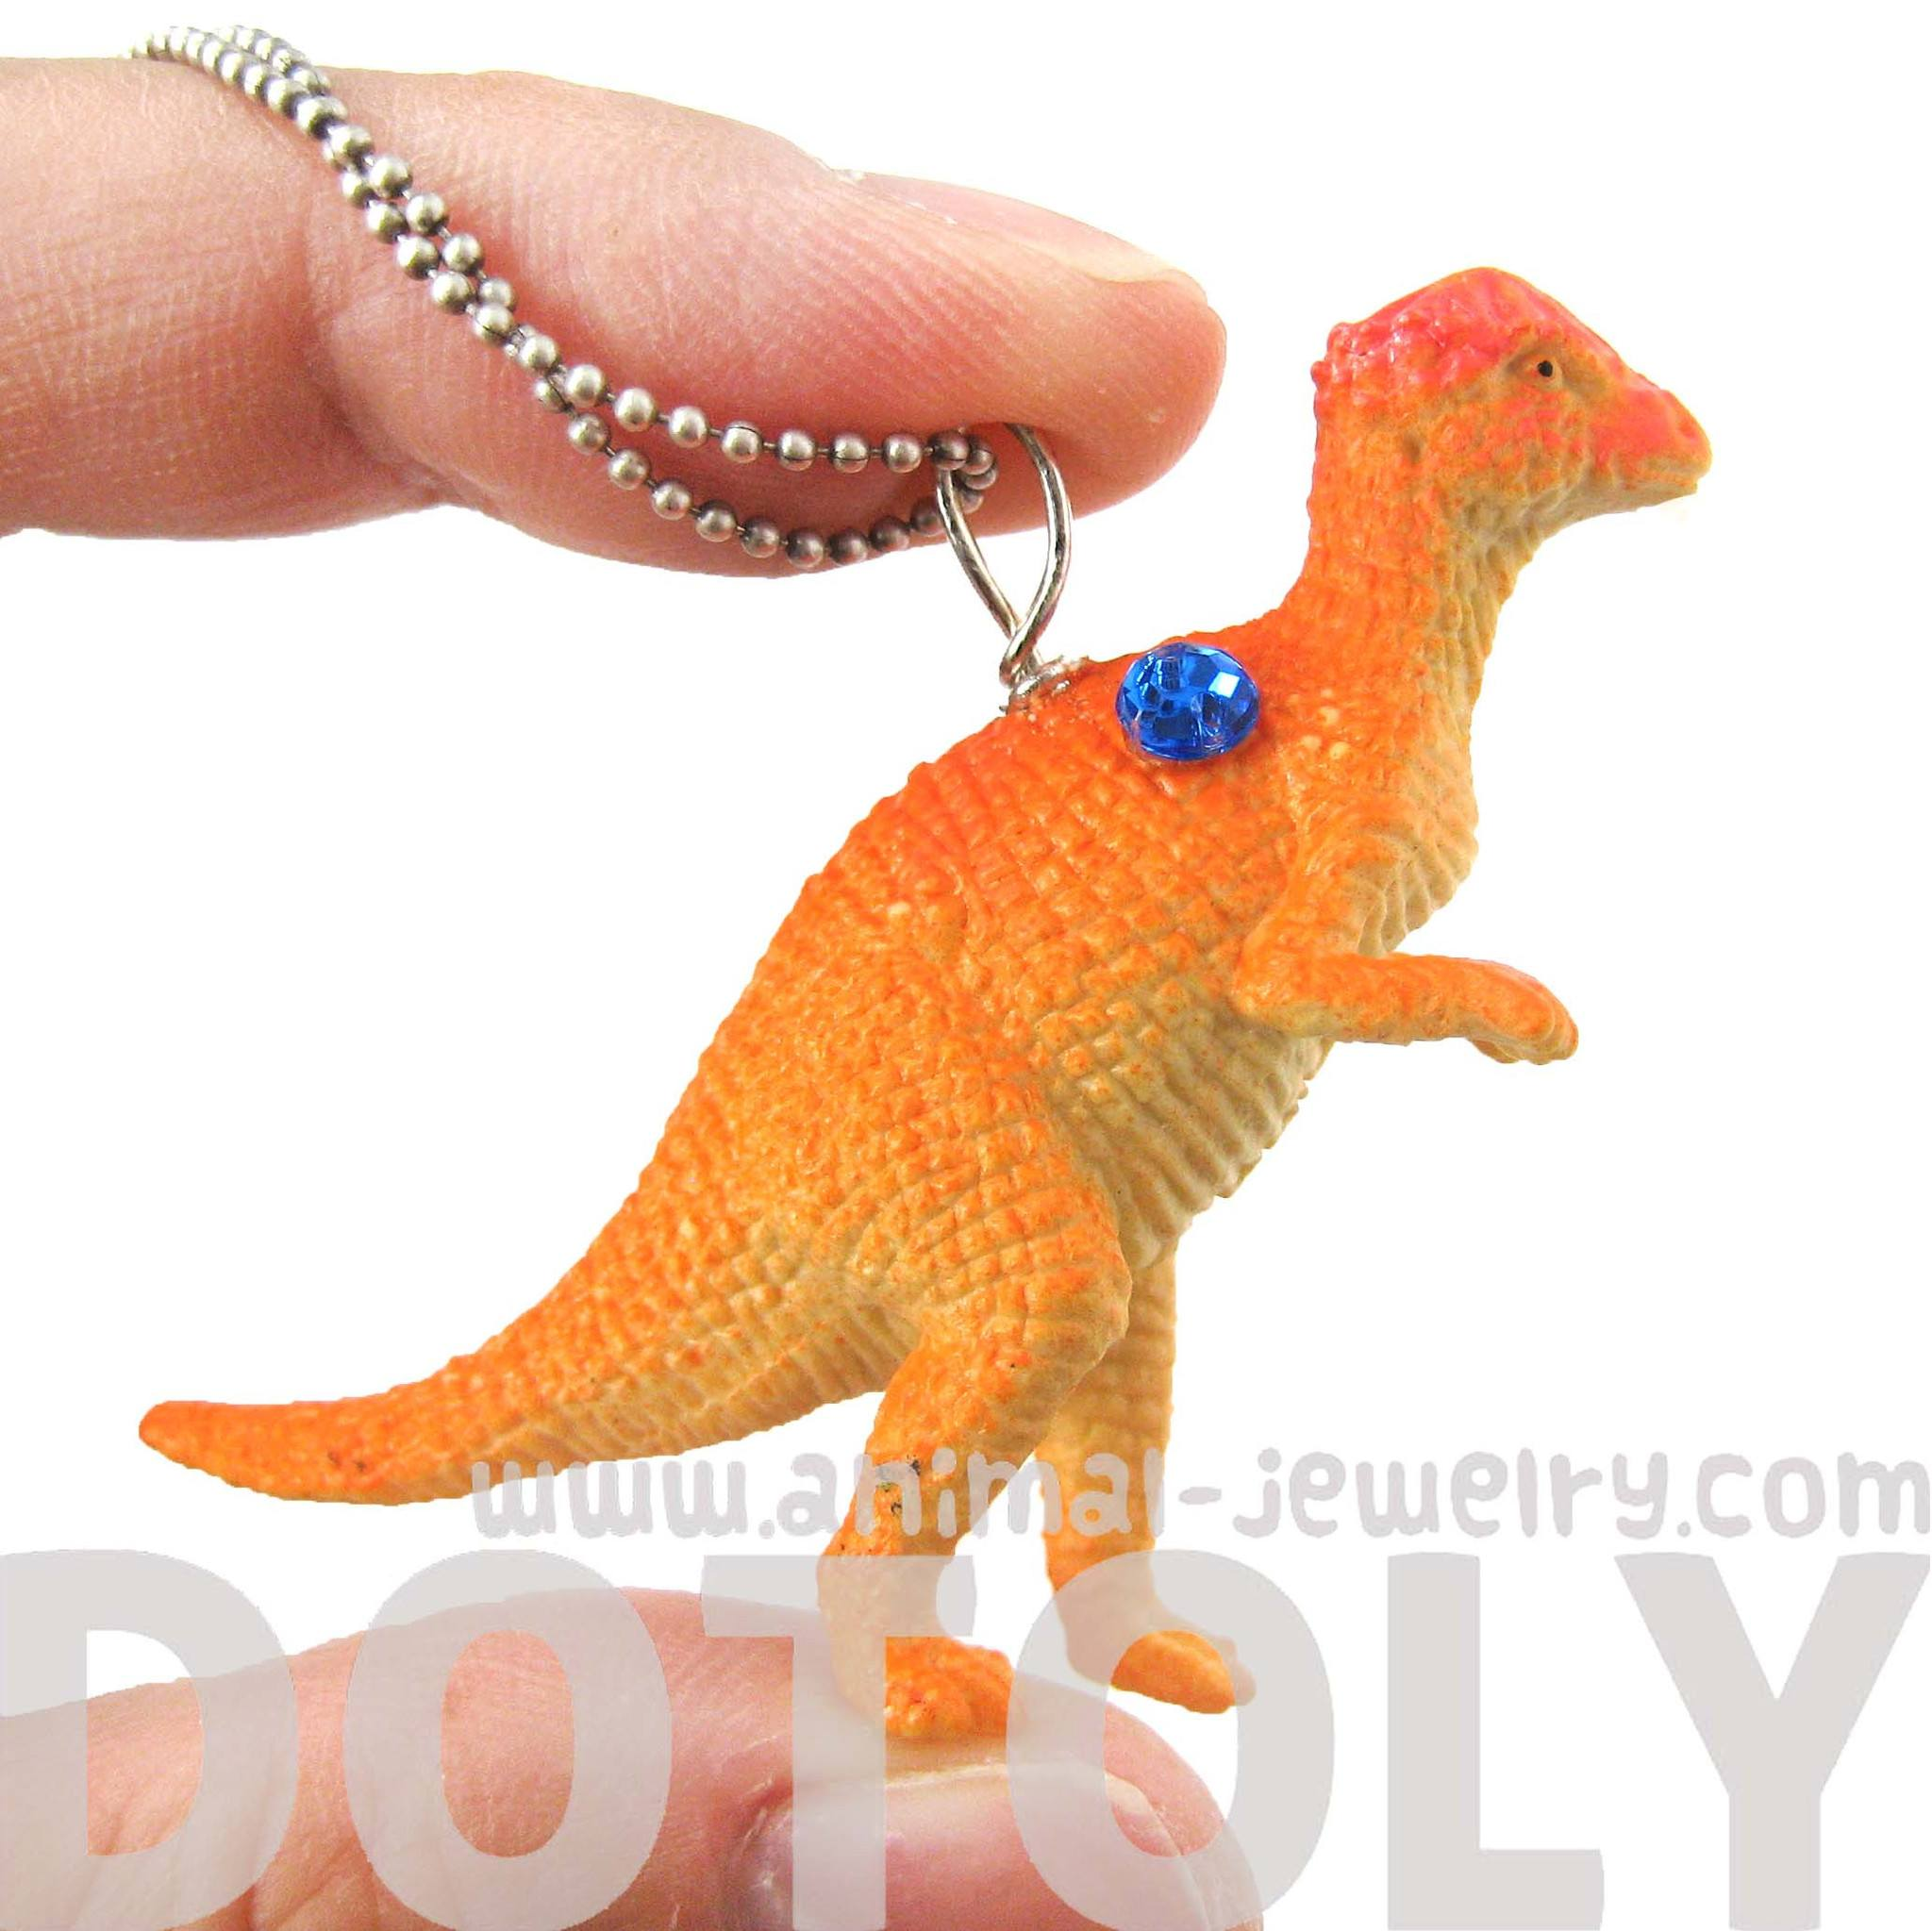 dinosaur-pachycephalosaurus-bone-head-shaped-pendant-necklace-animal-jewelry